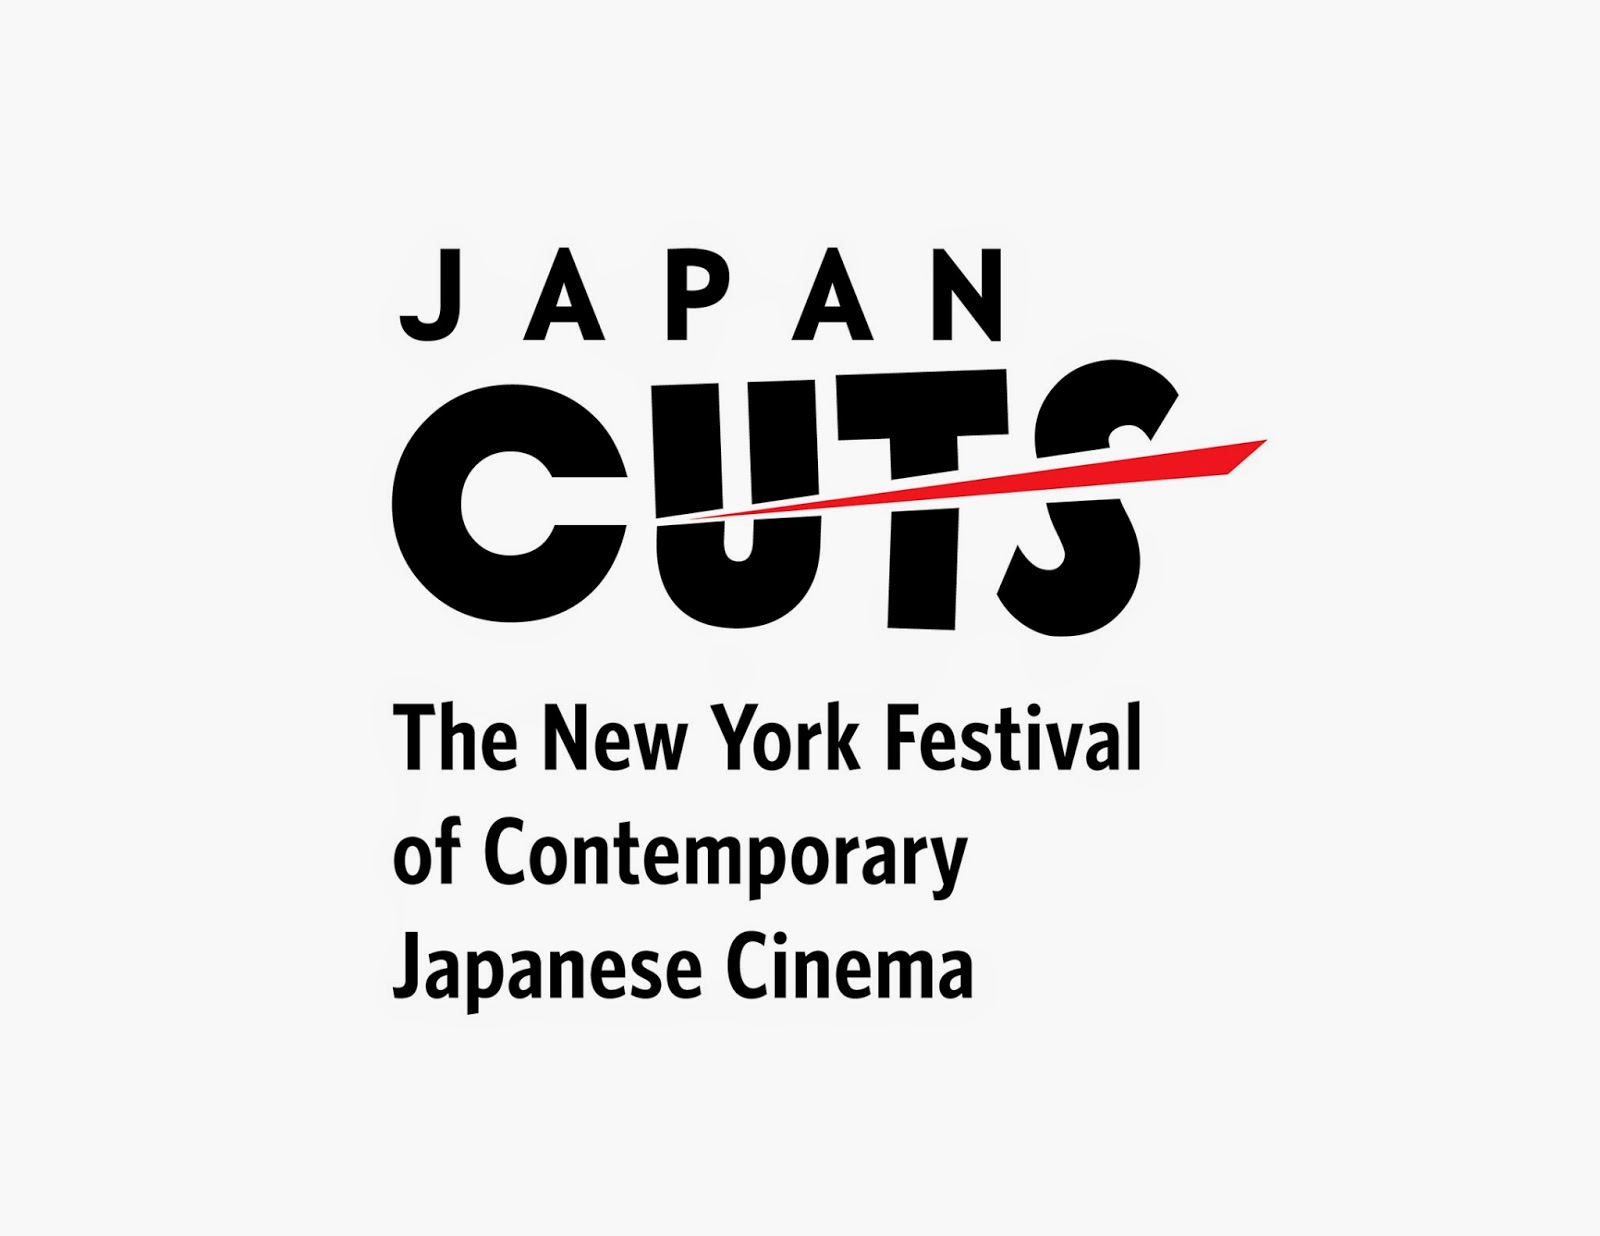 AsianCineFest: JAPAN CUTS: The New York Festival of